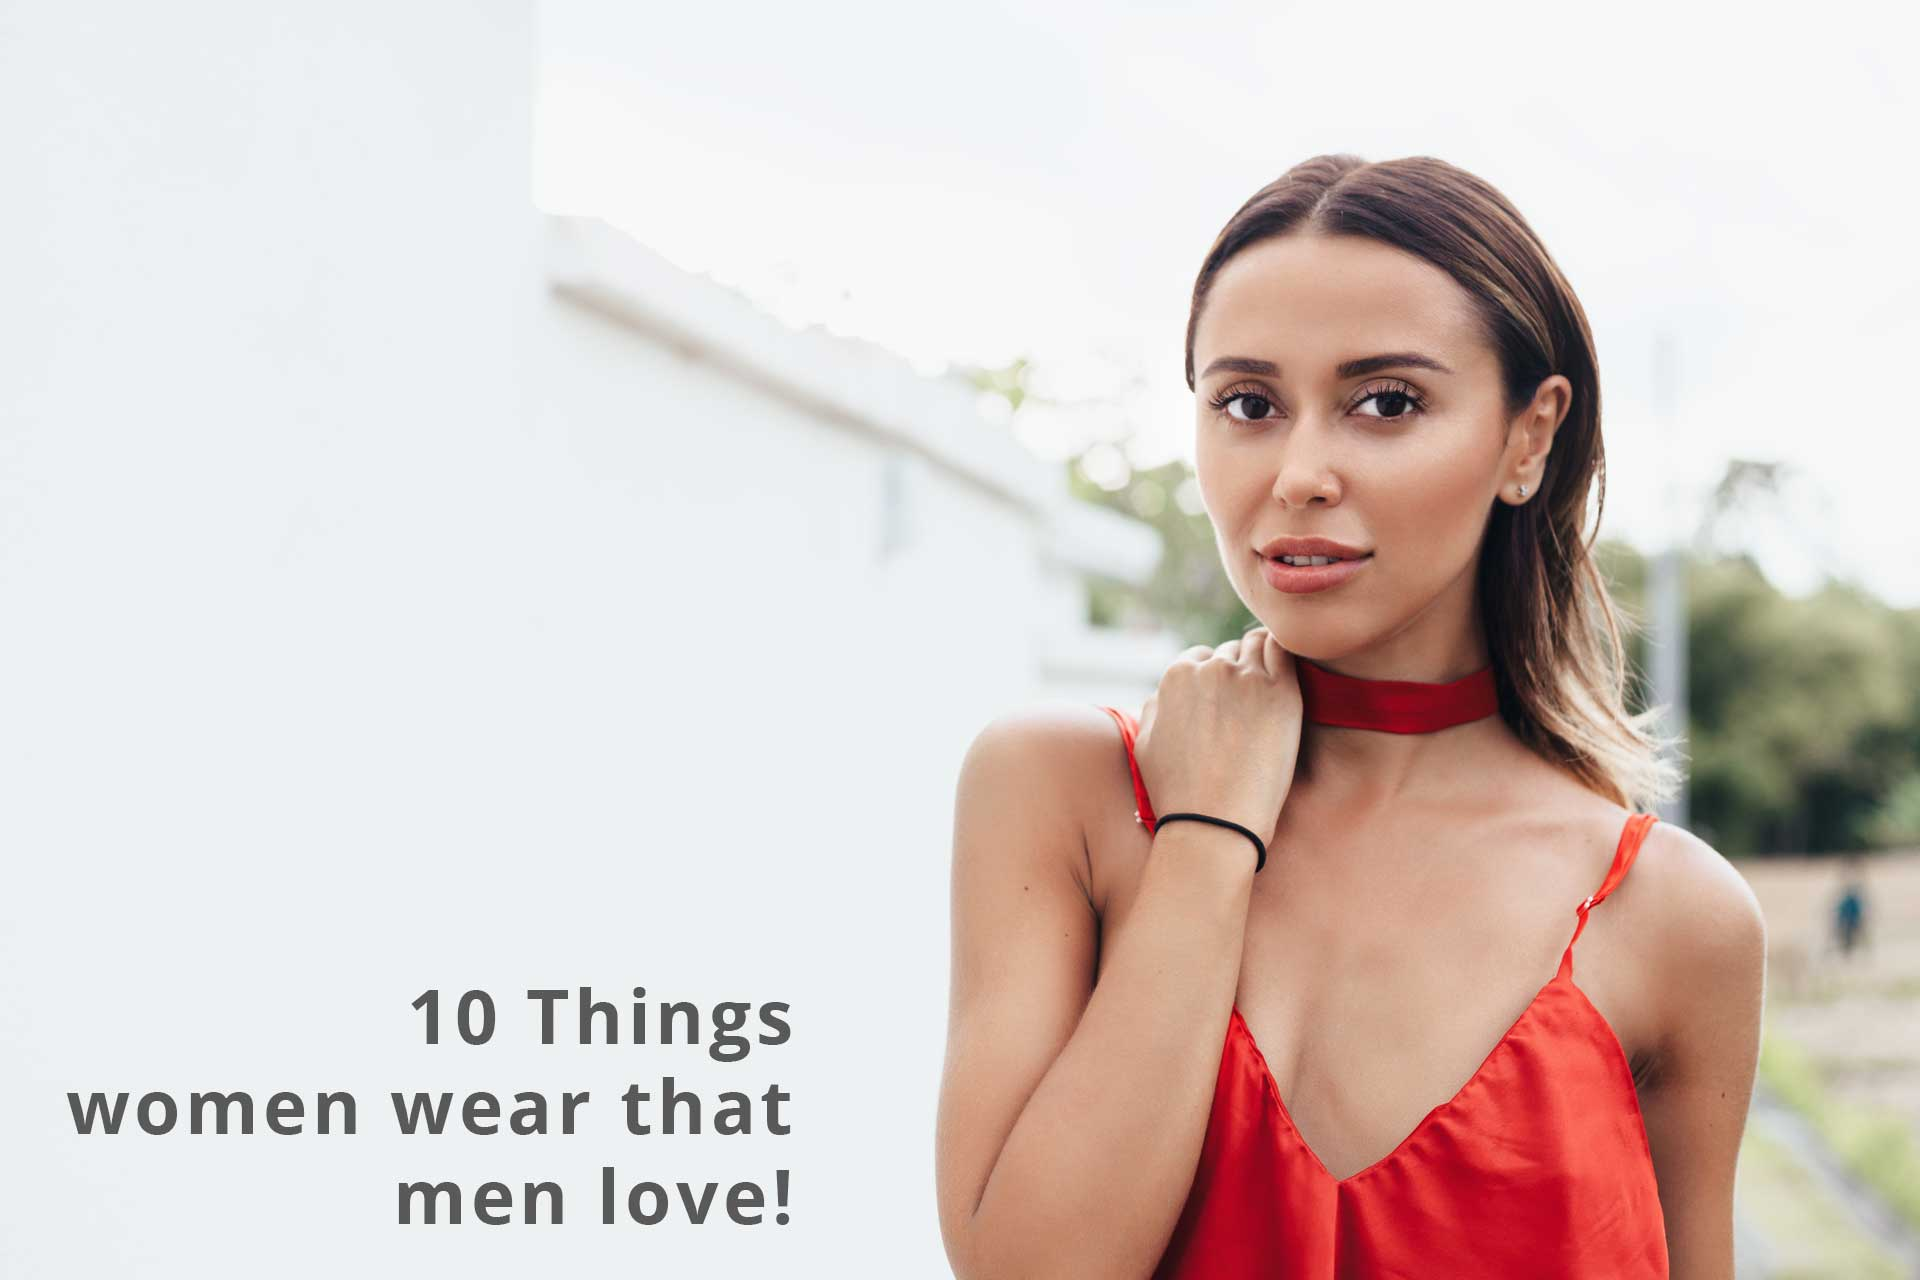 10 Things that women wear that men love